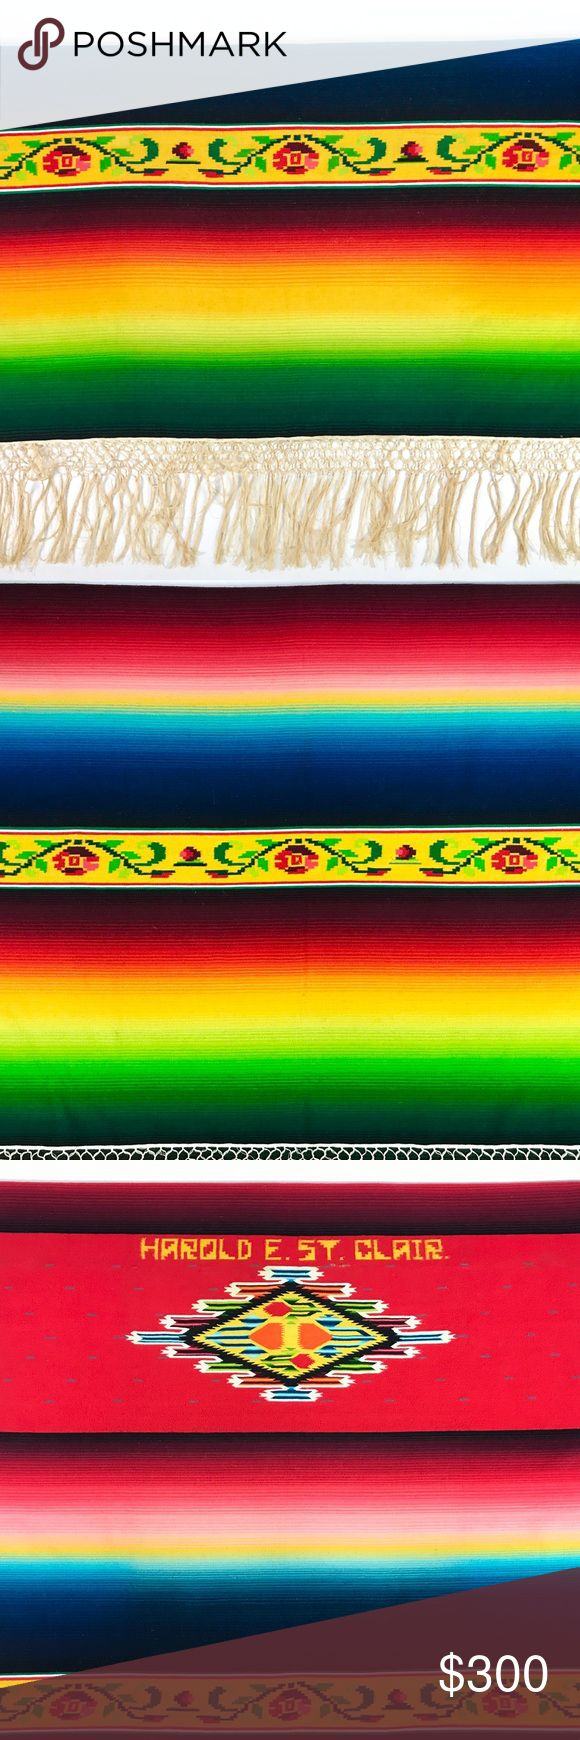 """1940s/50s Mexican serape Saltillo blanket Gorgeous Mexican serape Saltillo blanket. Rainbow stripes with strips of floral design and knotted fringe trim. Lovely diamond design in the center with """"Harold E. St. Clair"""" printed above. Estimated to be from the 1940-50's. Feels like wool. This southwestern throw has so much diversity and can be used as a wall tapestry, blanket, or rug. Excellent condition for it's age, only one small spot where the thread is thinning, right below the name…"""